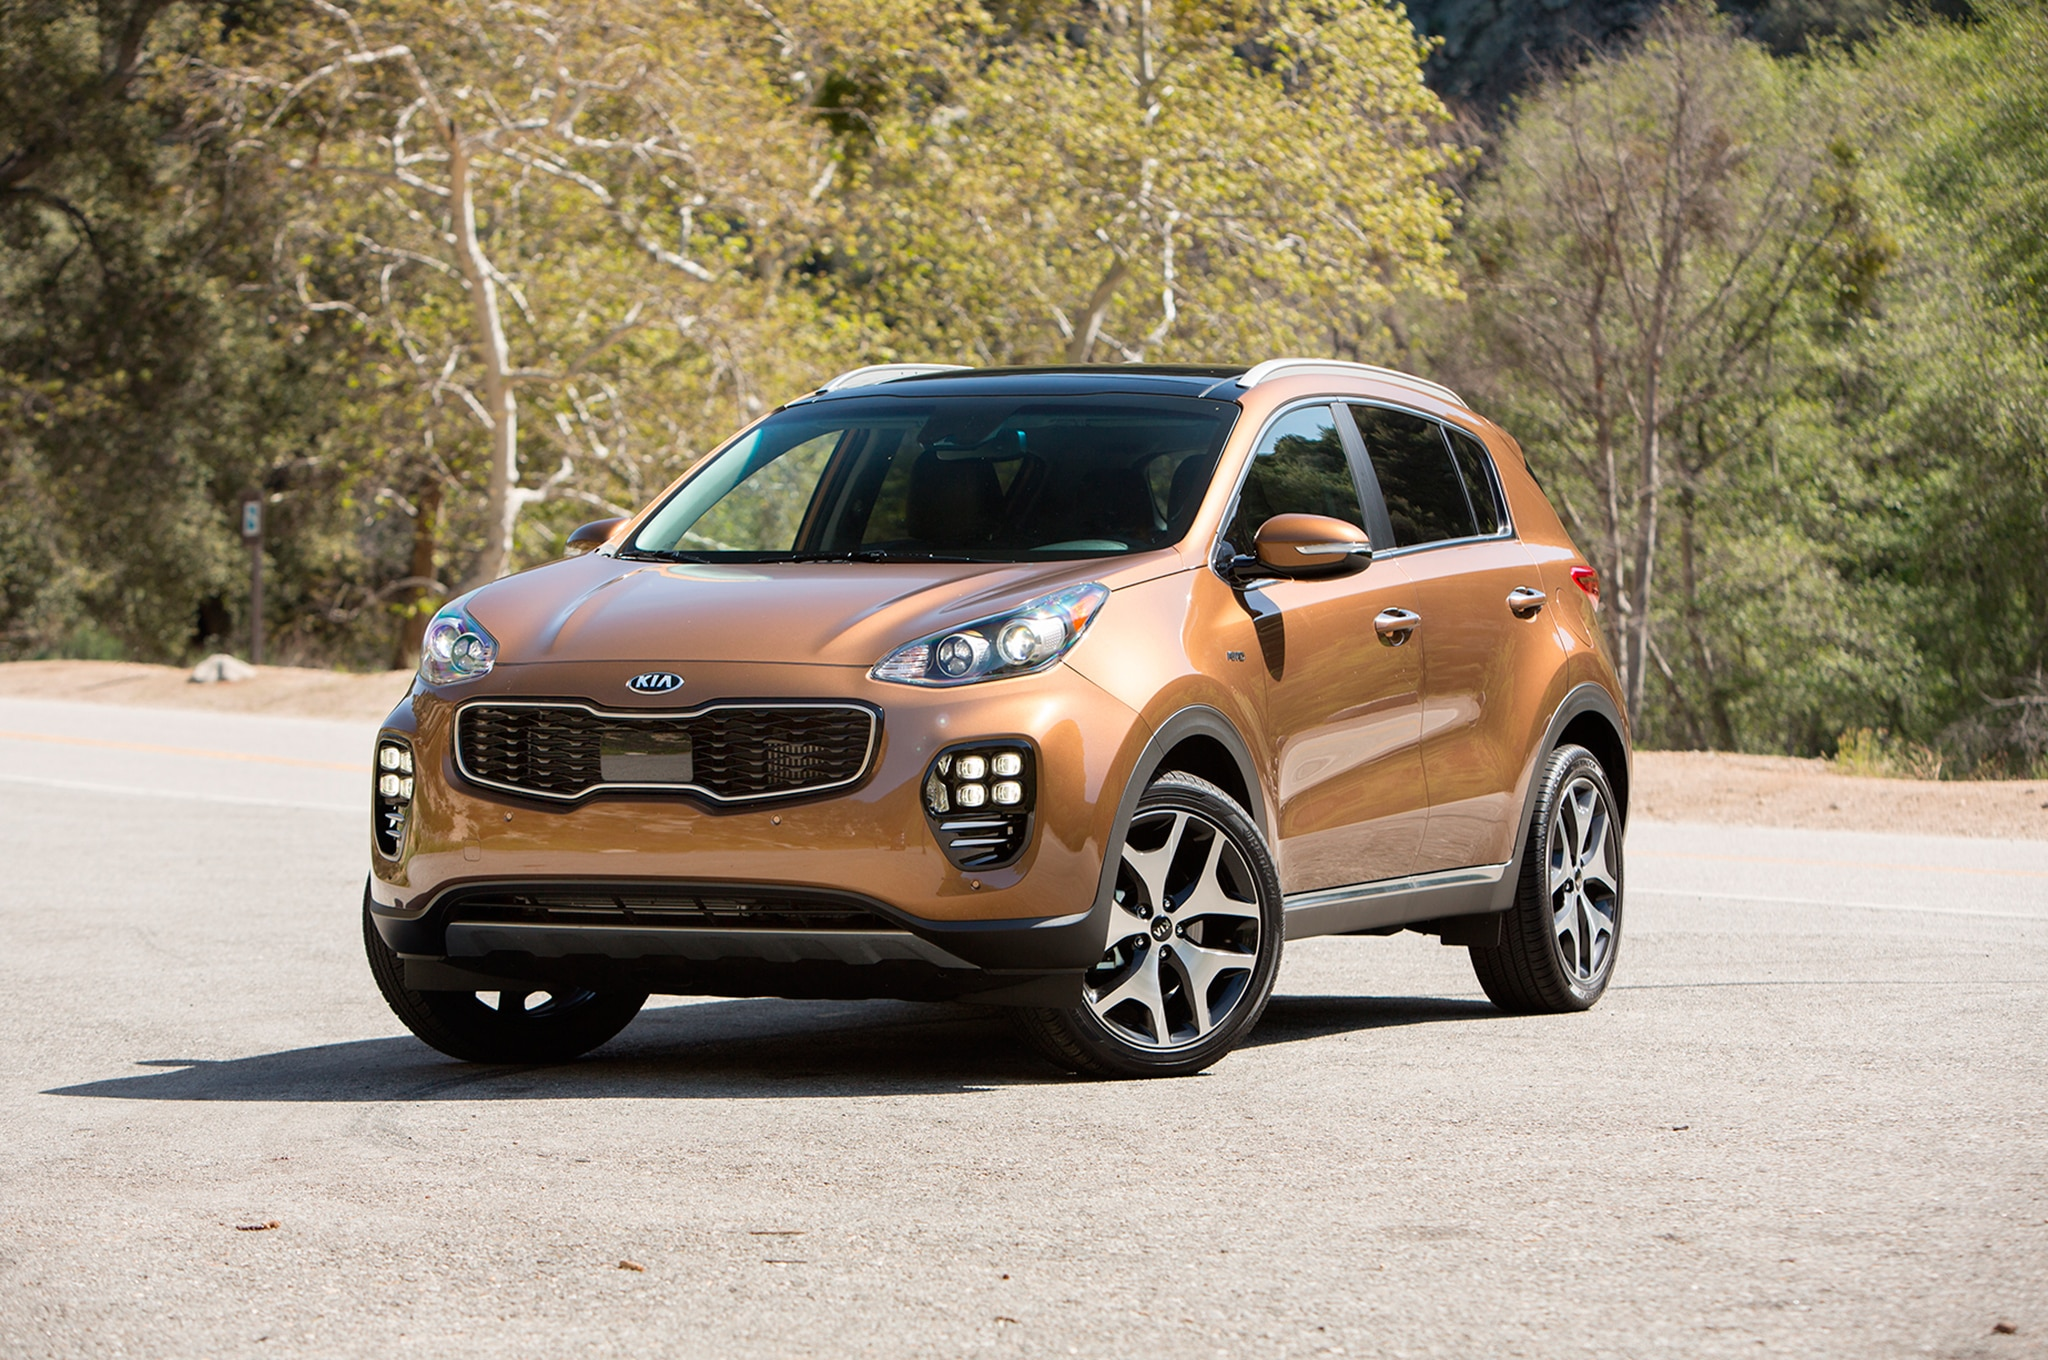 2017 kia sportage ex awd review update 5 motor trend autos post. Black Bedroom Furniture Sets. Home Design Ideas